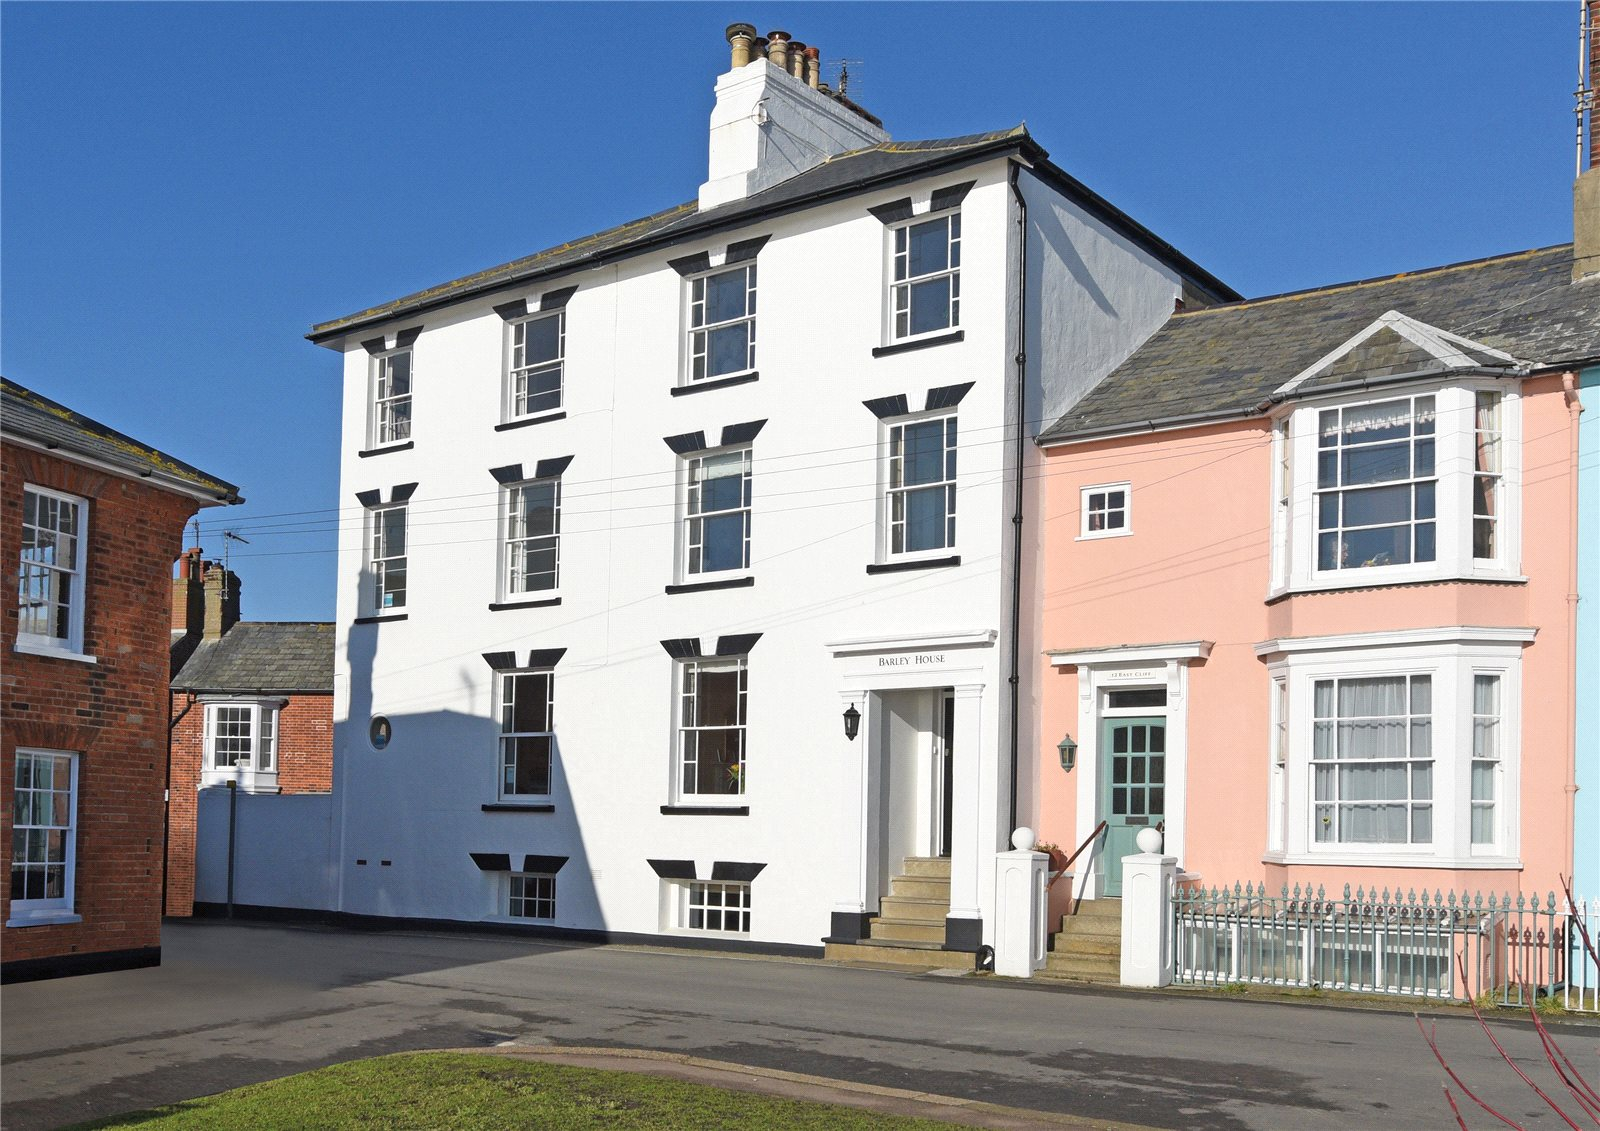 Single Family Home for Sale at East Cliff, Southwold, Suffolk, IP18 Southwold, England